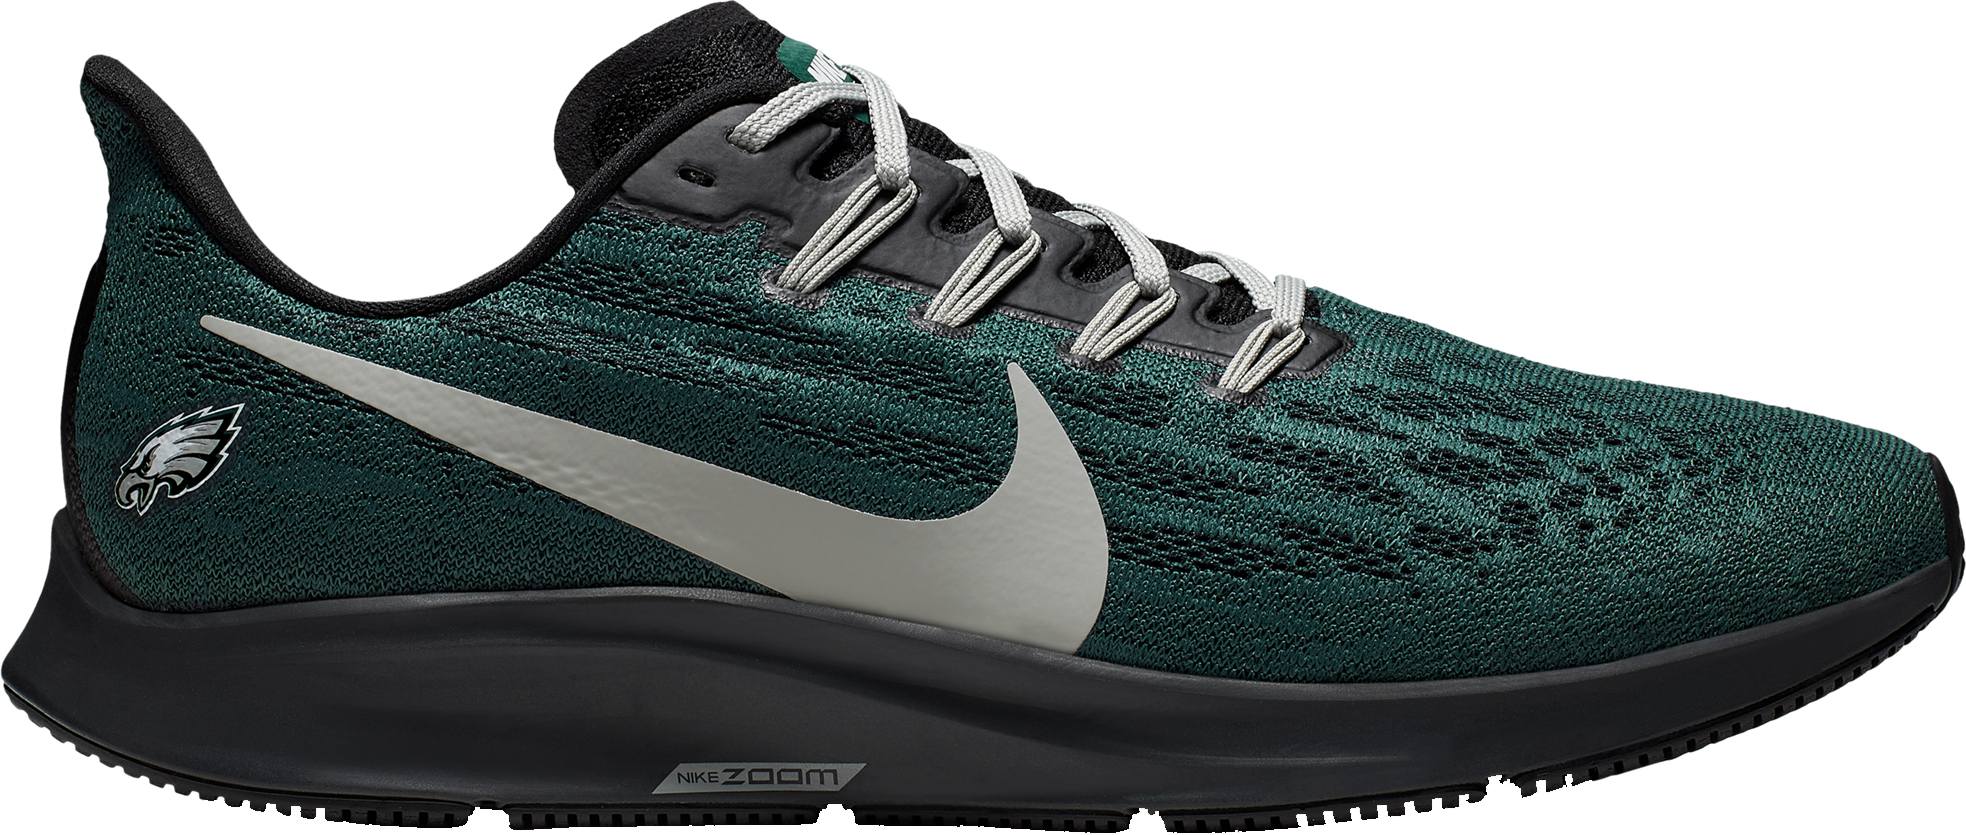 New Nike Eagles Sneakers – CBS Philly